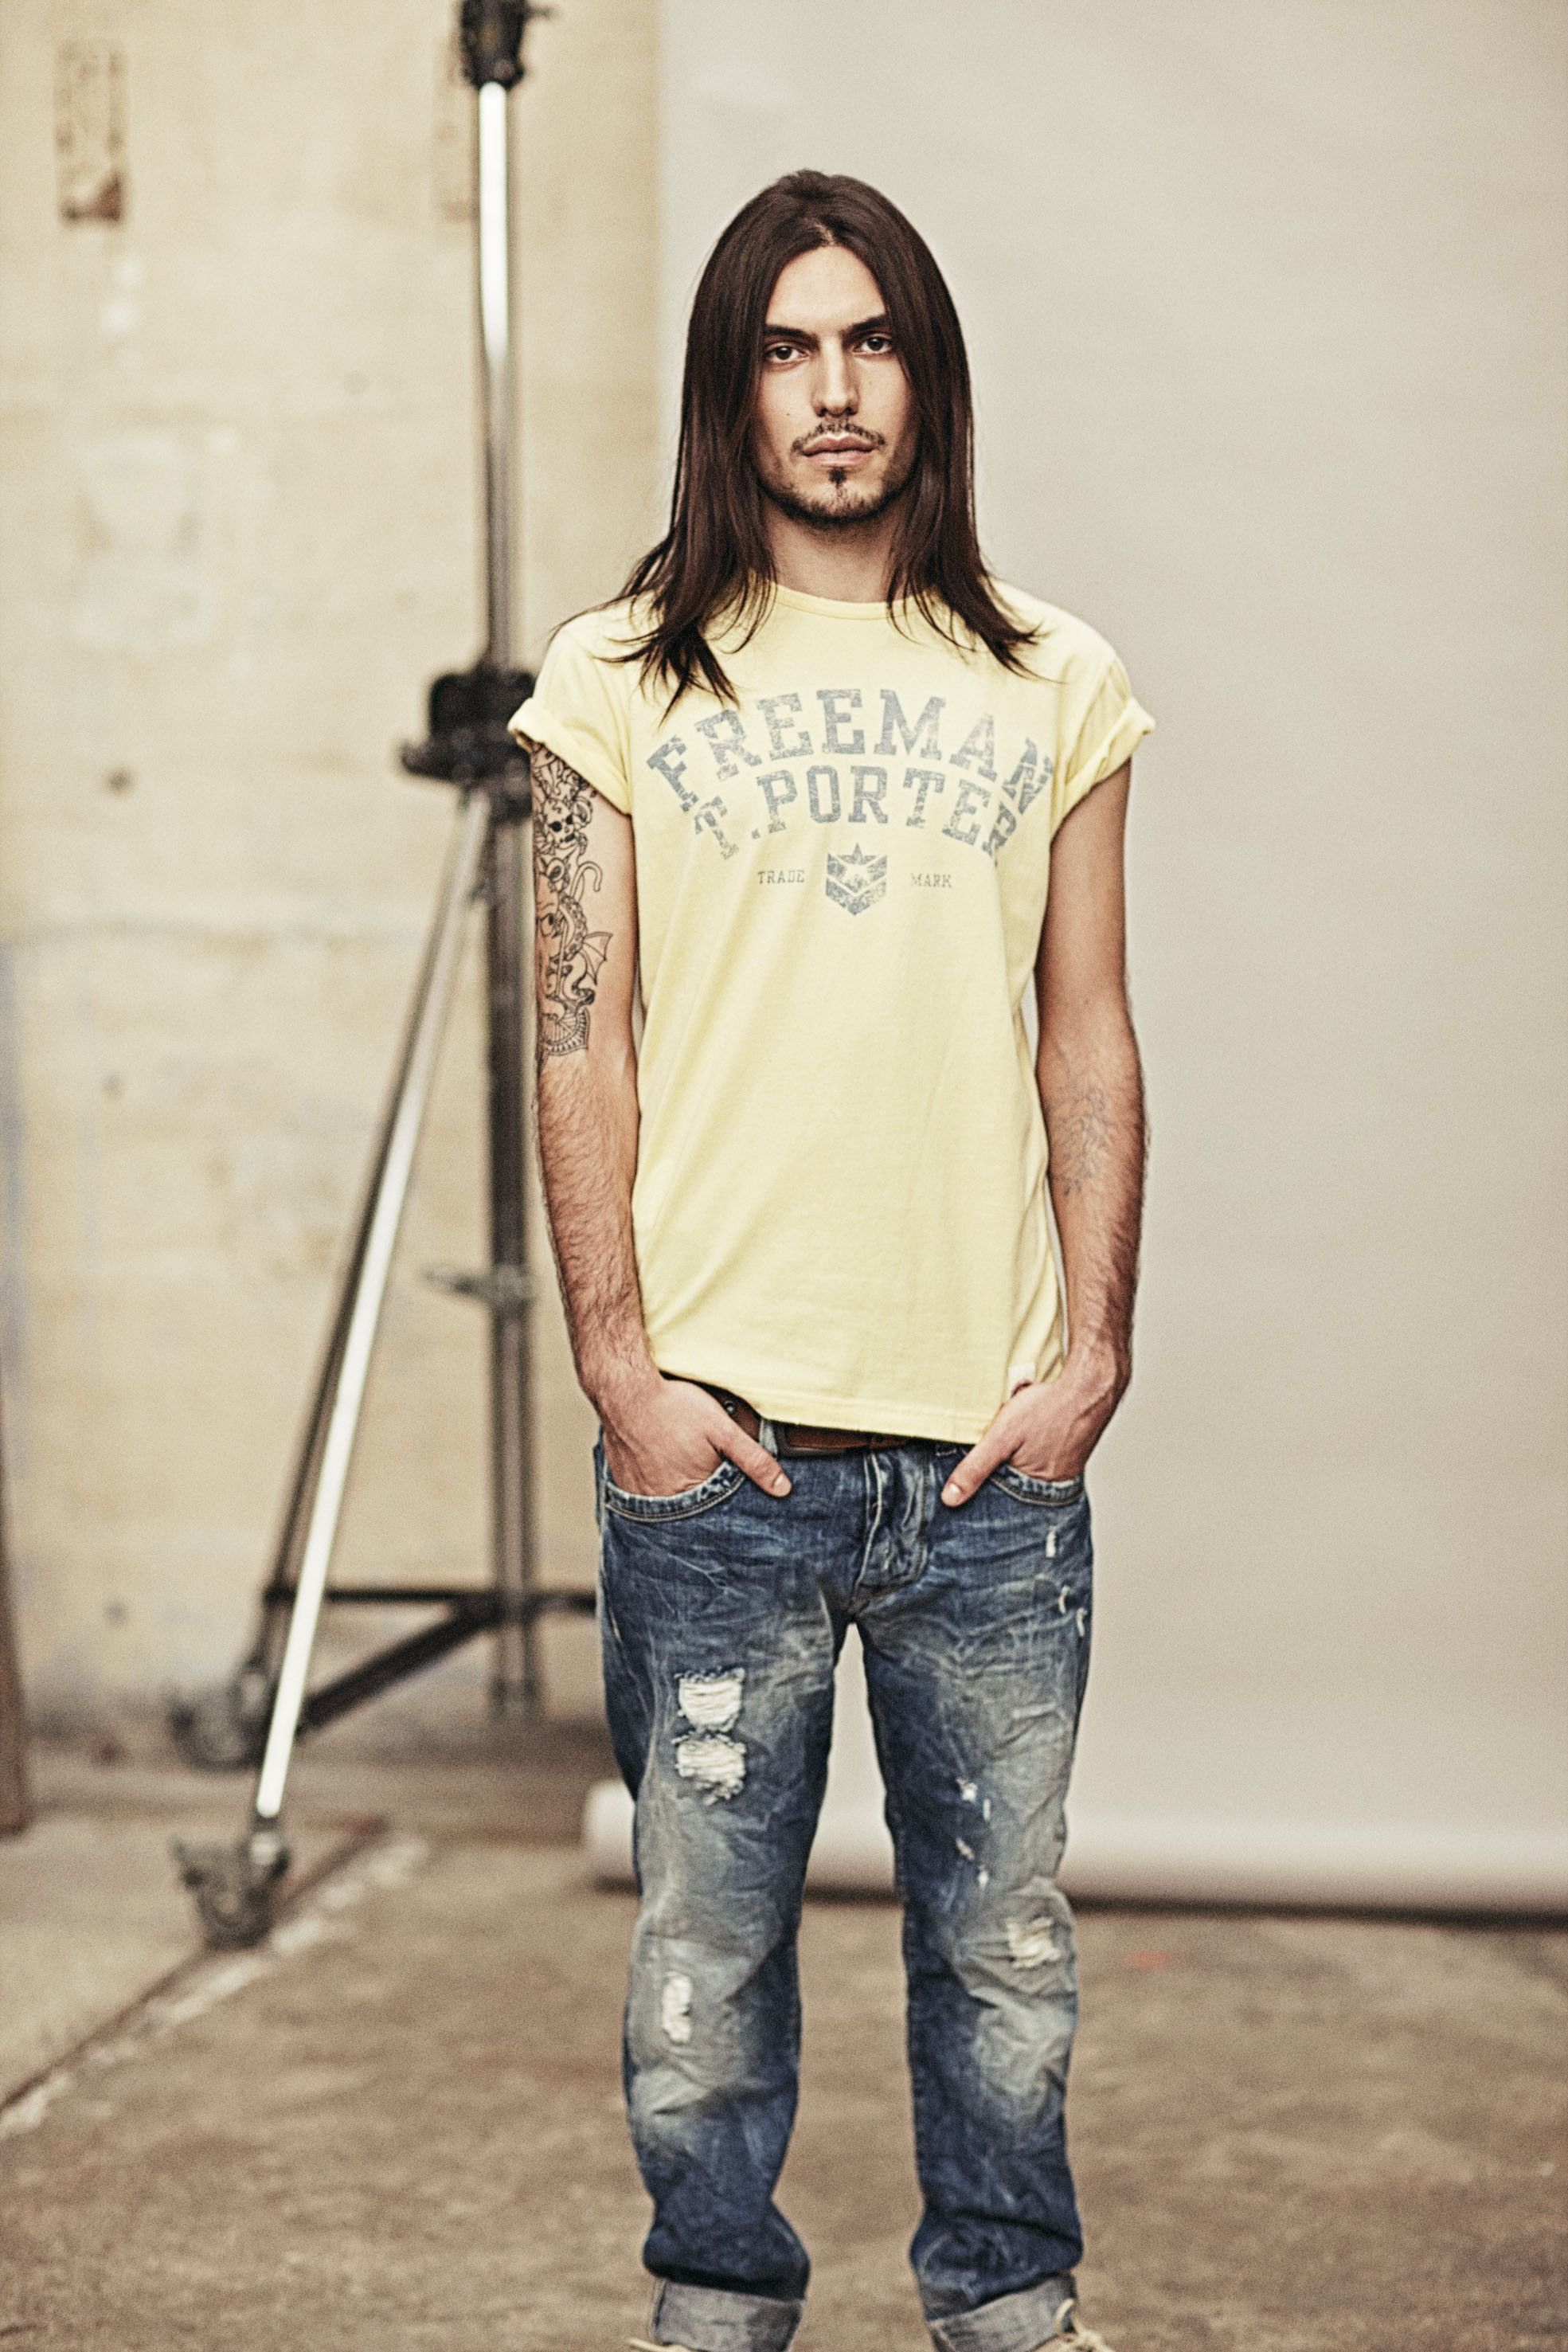 Look Book Homme, Mode Homme | FREEMAN T. PORTER #FREEMANTPORTER #Denims #man #fashion